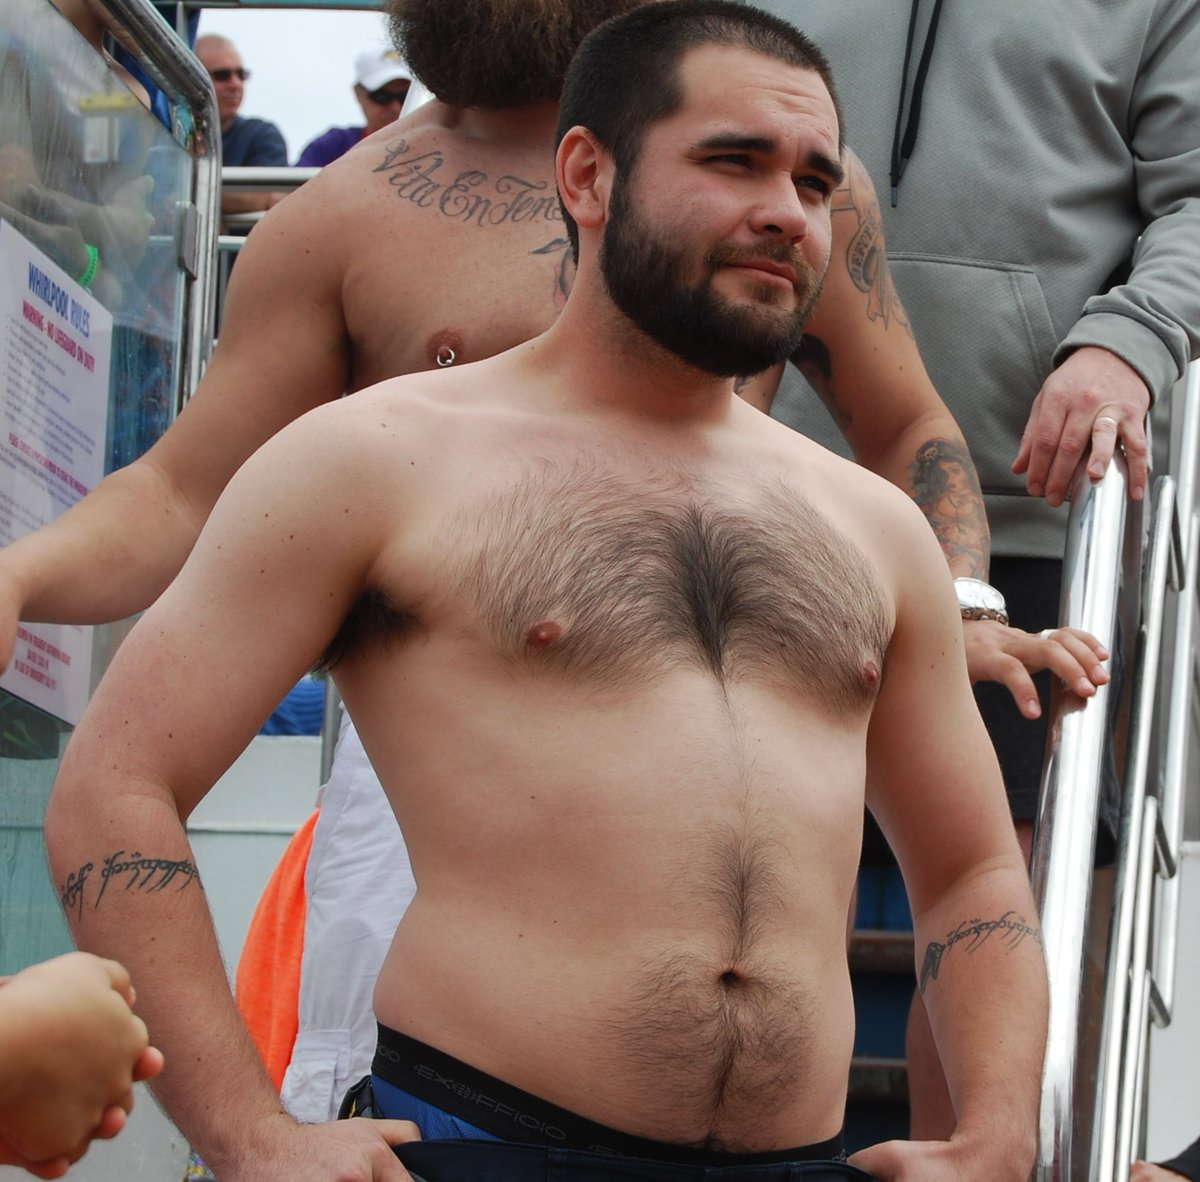 hairy dudes get MONTHLY SALARY see  http:// ModelingPortfolio.org  &nbsp;   #bearcub #hairy #chest #beard #whiskers #carnival #cruise #ship #event #contest<br>http://pic.twitter.com/Gl2nI1mhdk